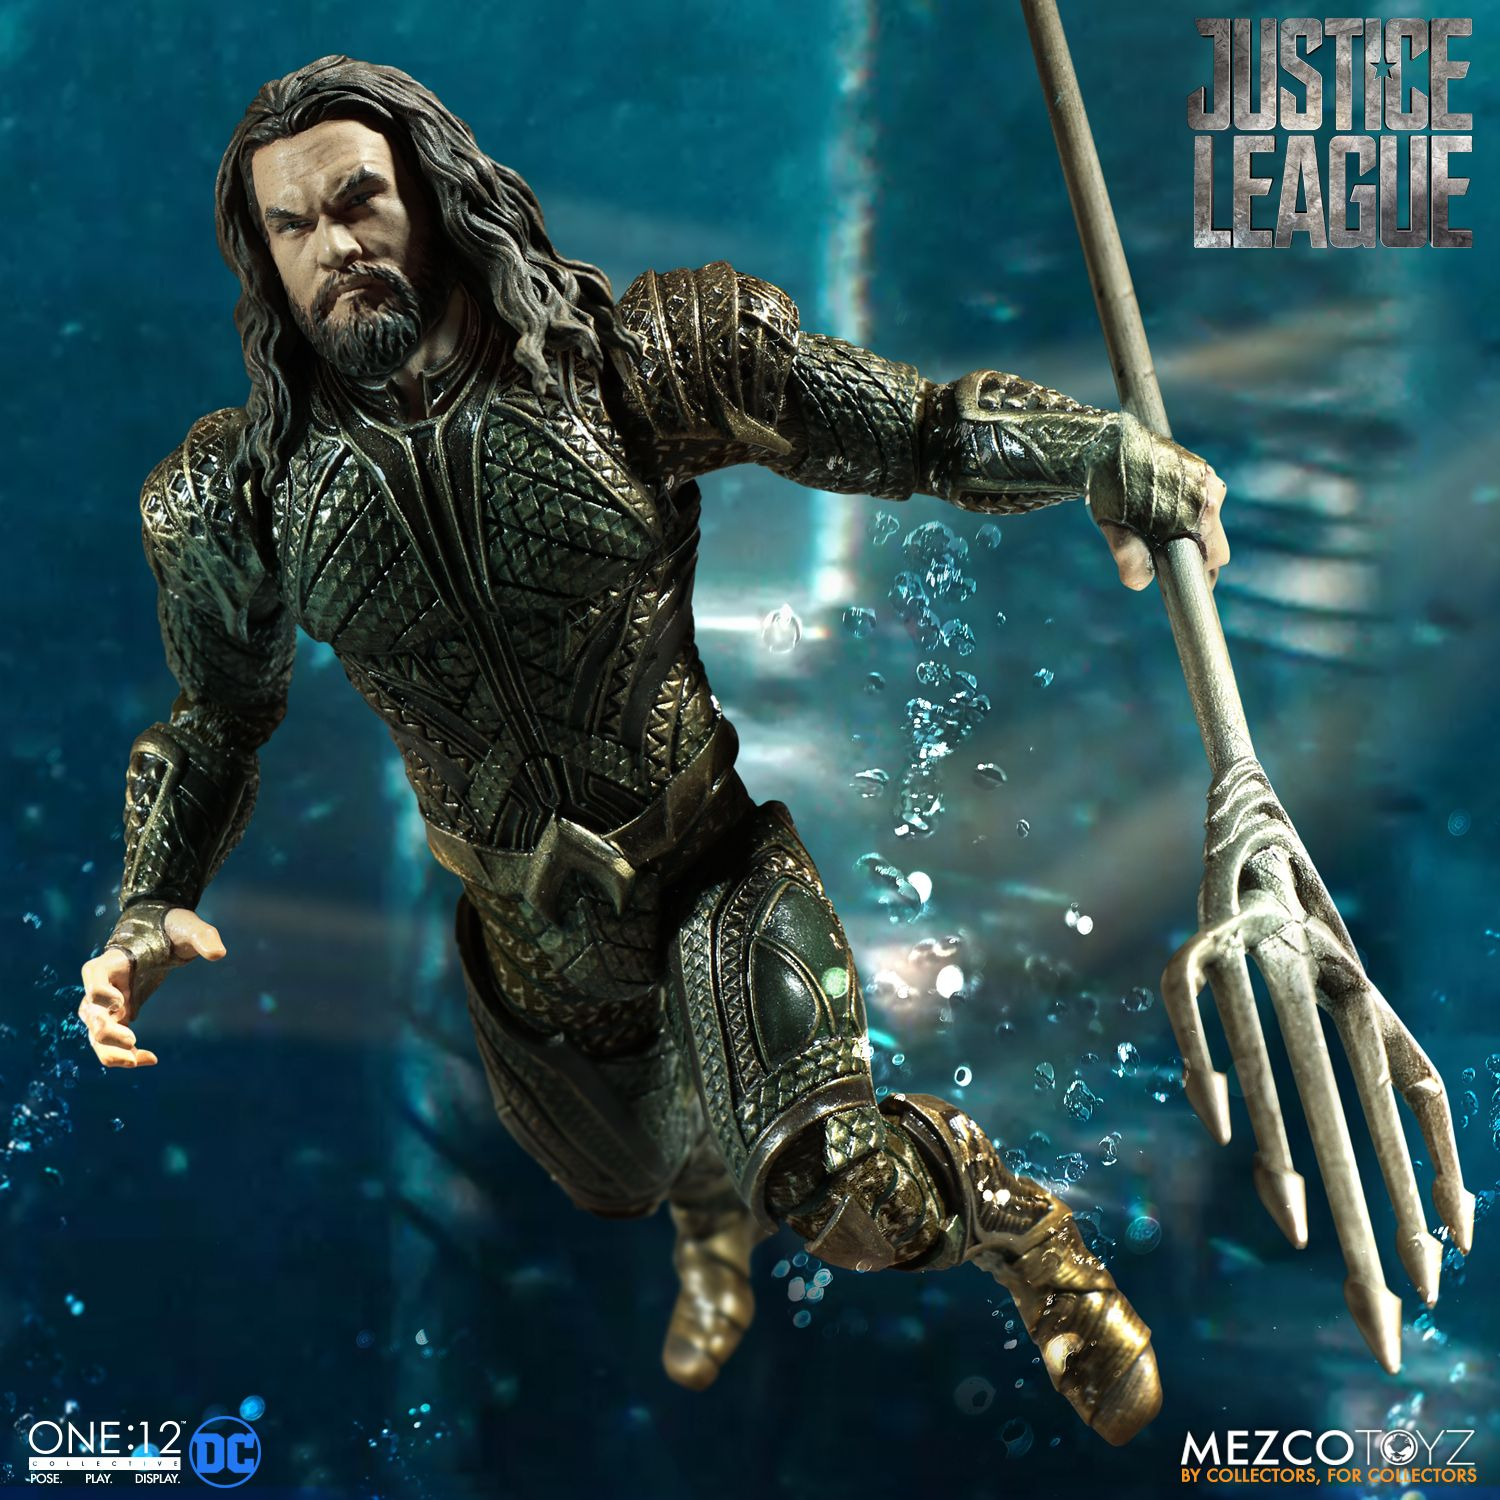 Mezco-JL-One12-Aquaman-Figure-005